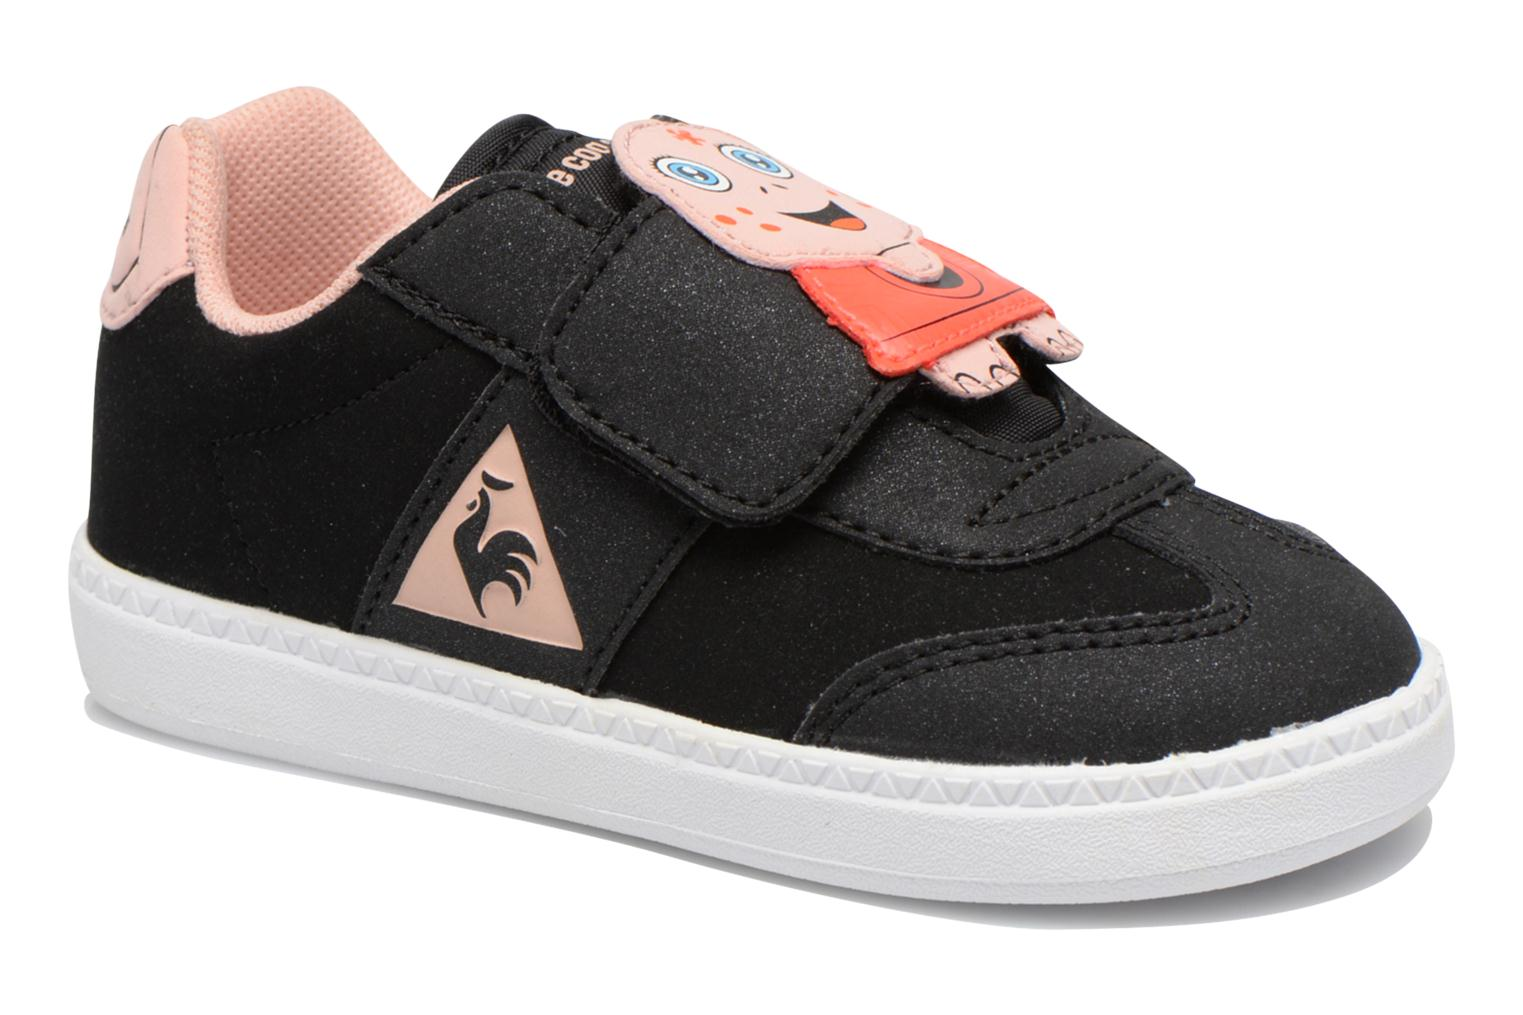 sneakers-tacleone-inf-animal-face-girl-by-le-coq-sportif